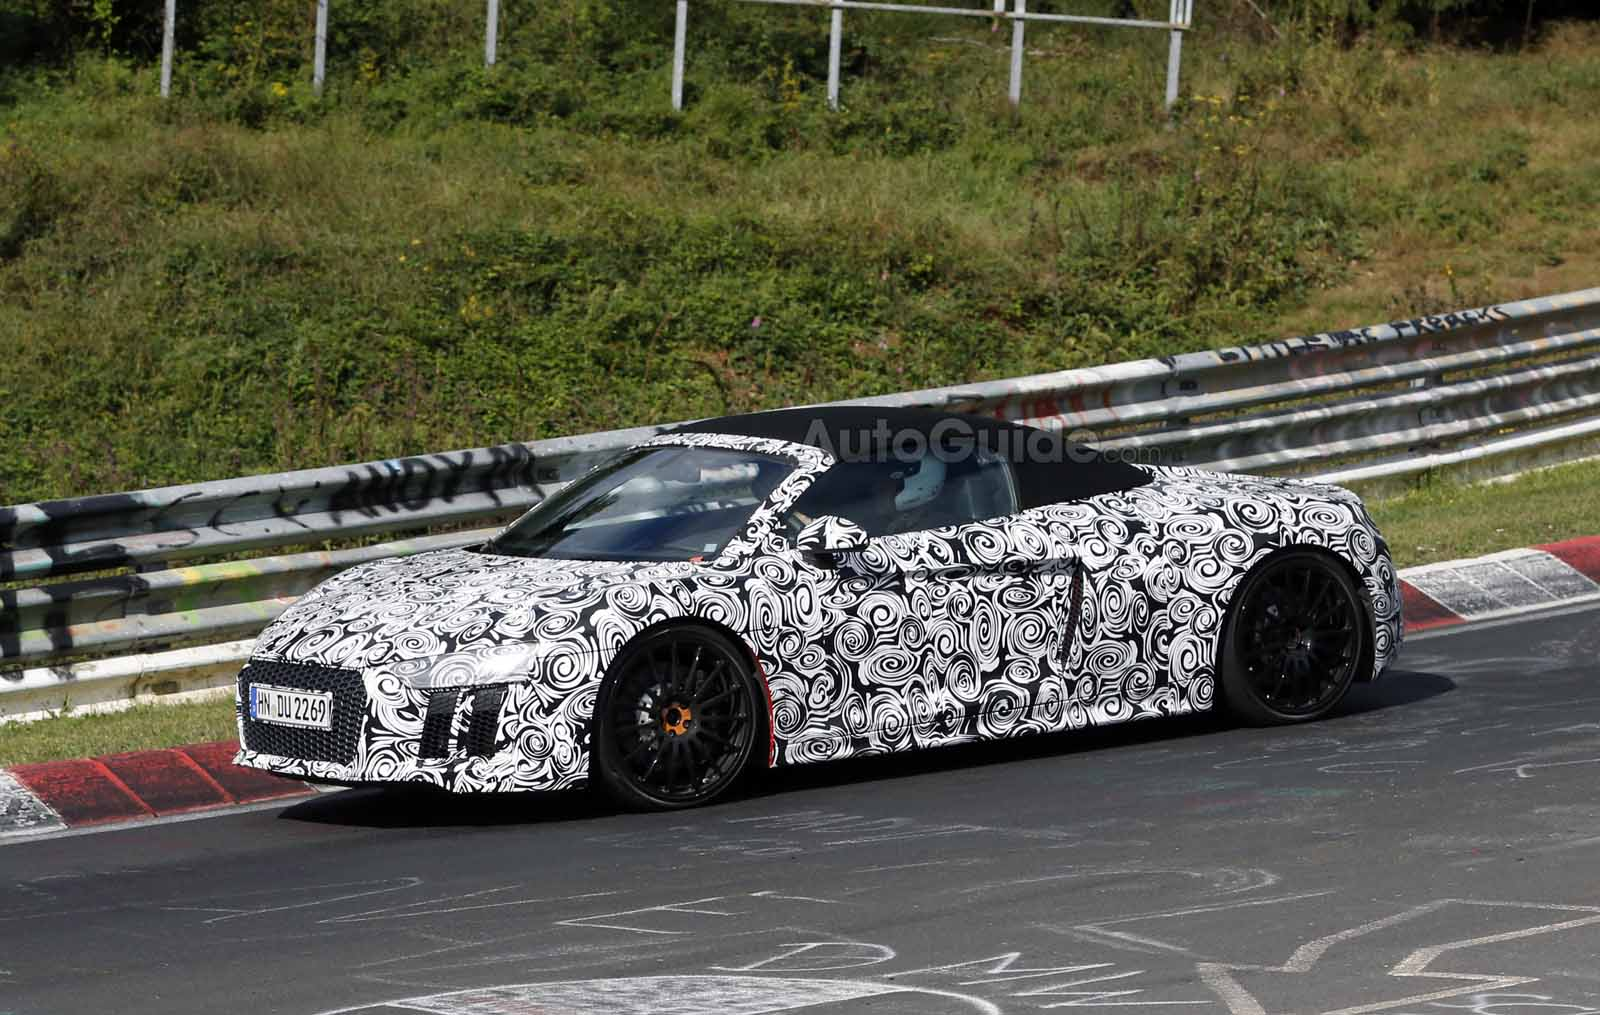 2017 audi r8 spyder spied testing news. Black Bedroom Furniture Sets. Home Design Ideas